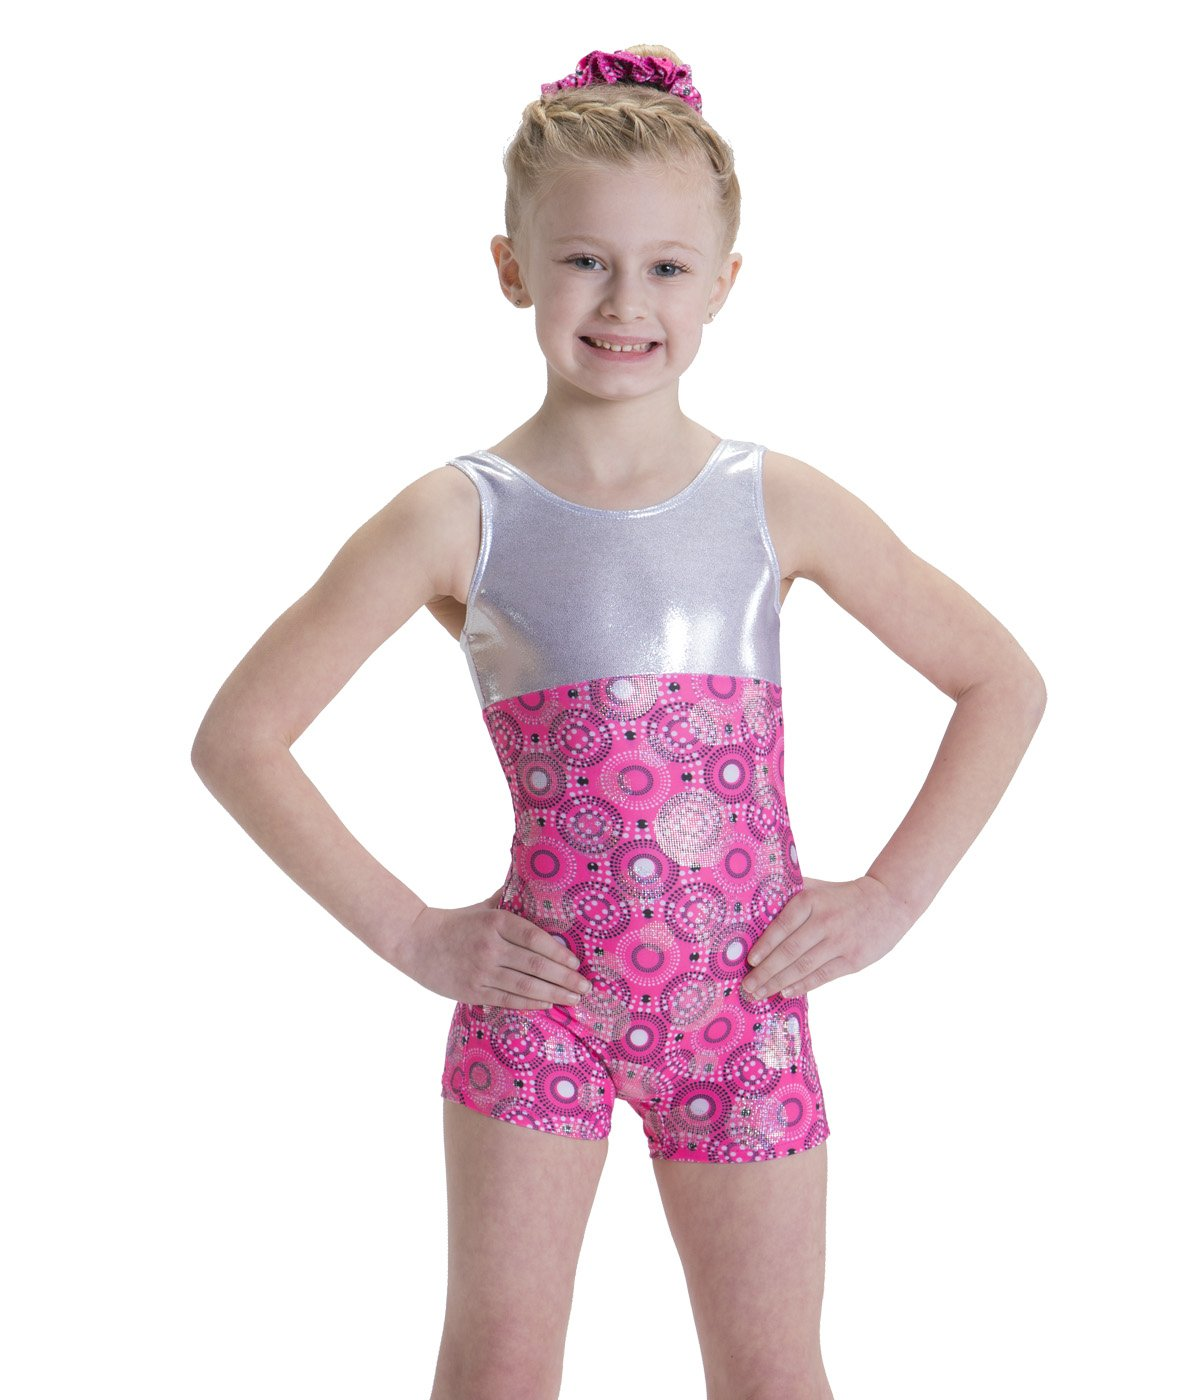 fa0124621e6c Amazon.com : Motionwear Gymnastic Poppin' Pink Print with Bouncing Bubbles  Holographic Foil Body, Pink Print, Small Child : Sports & Outdoors